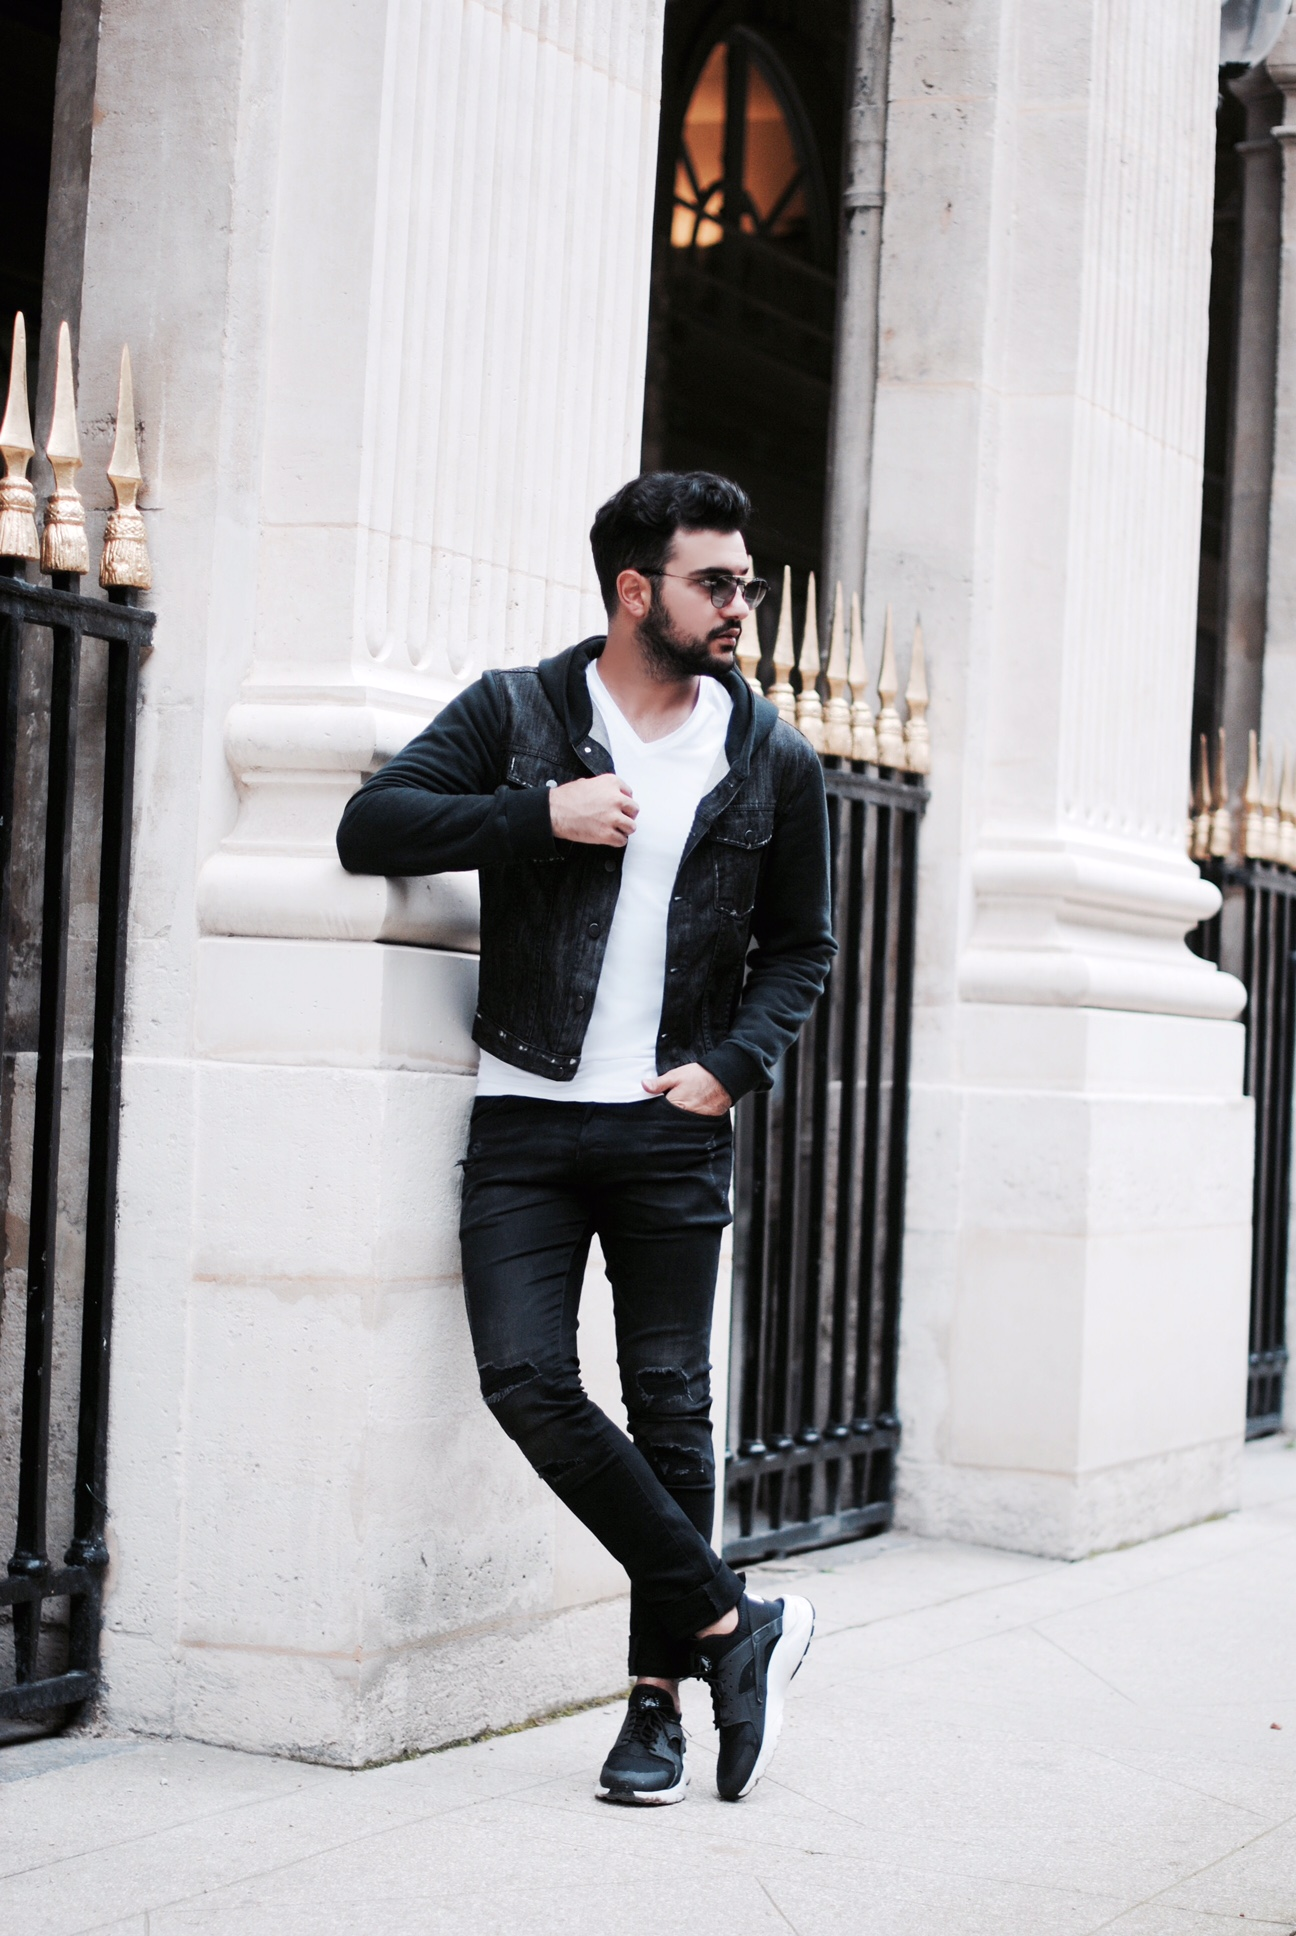 kubilay-sakarya-paris-denim-jacket